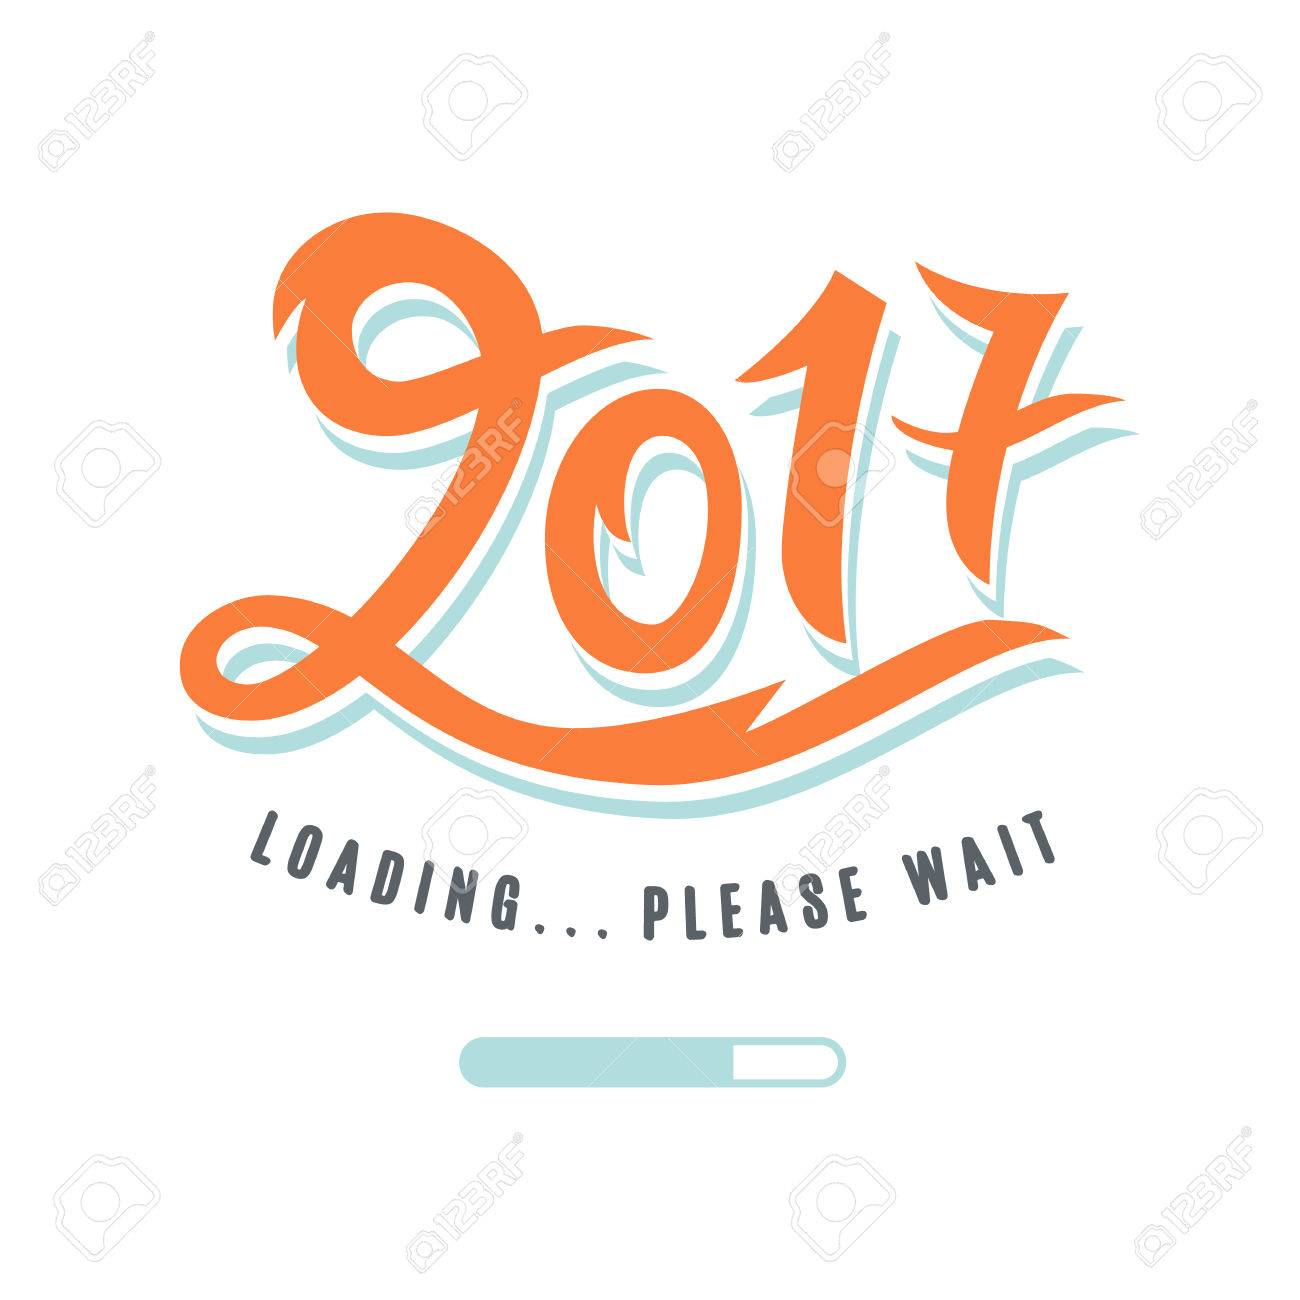 2017 Is Loading. Please Wait. Amusing New Year Poster. Funny ...